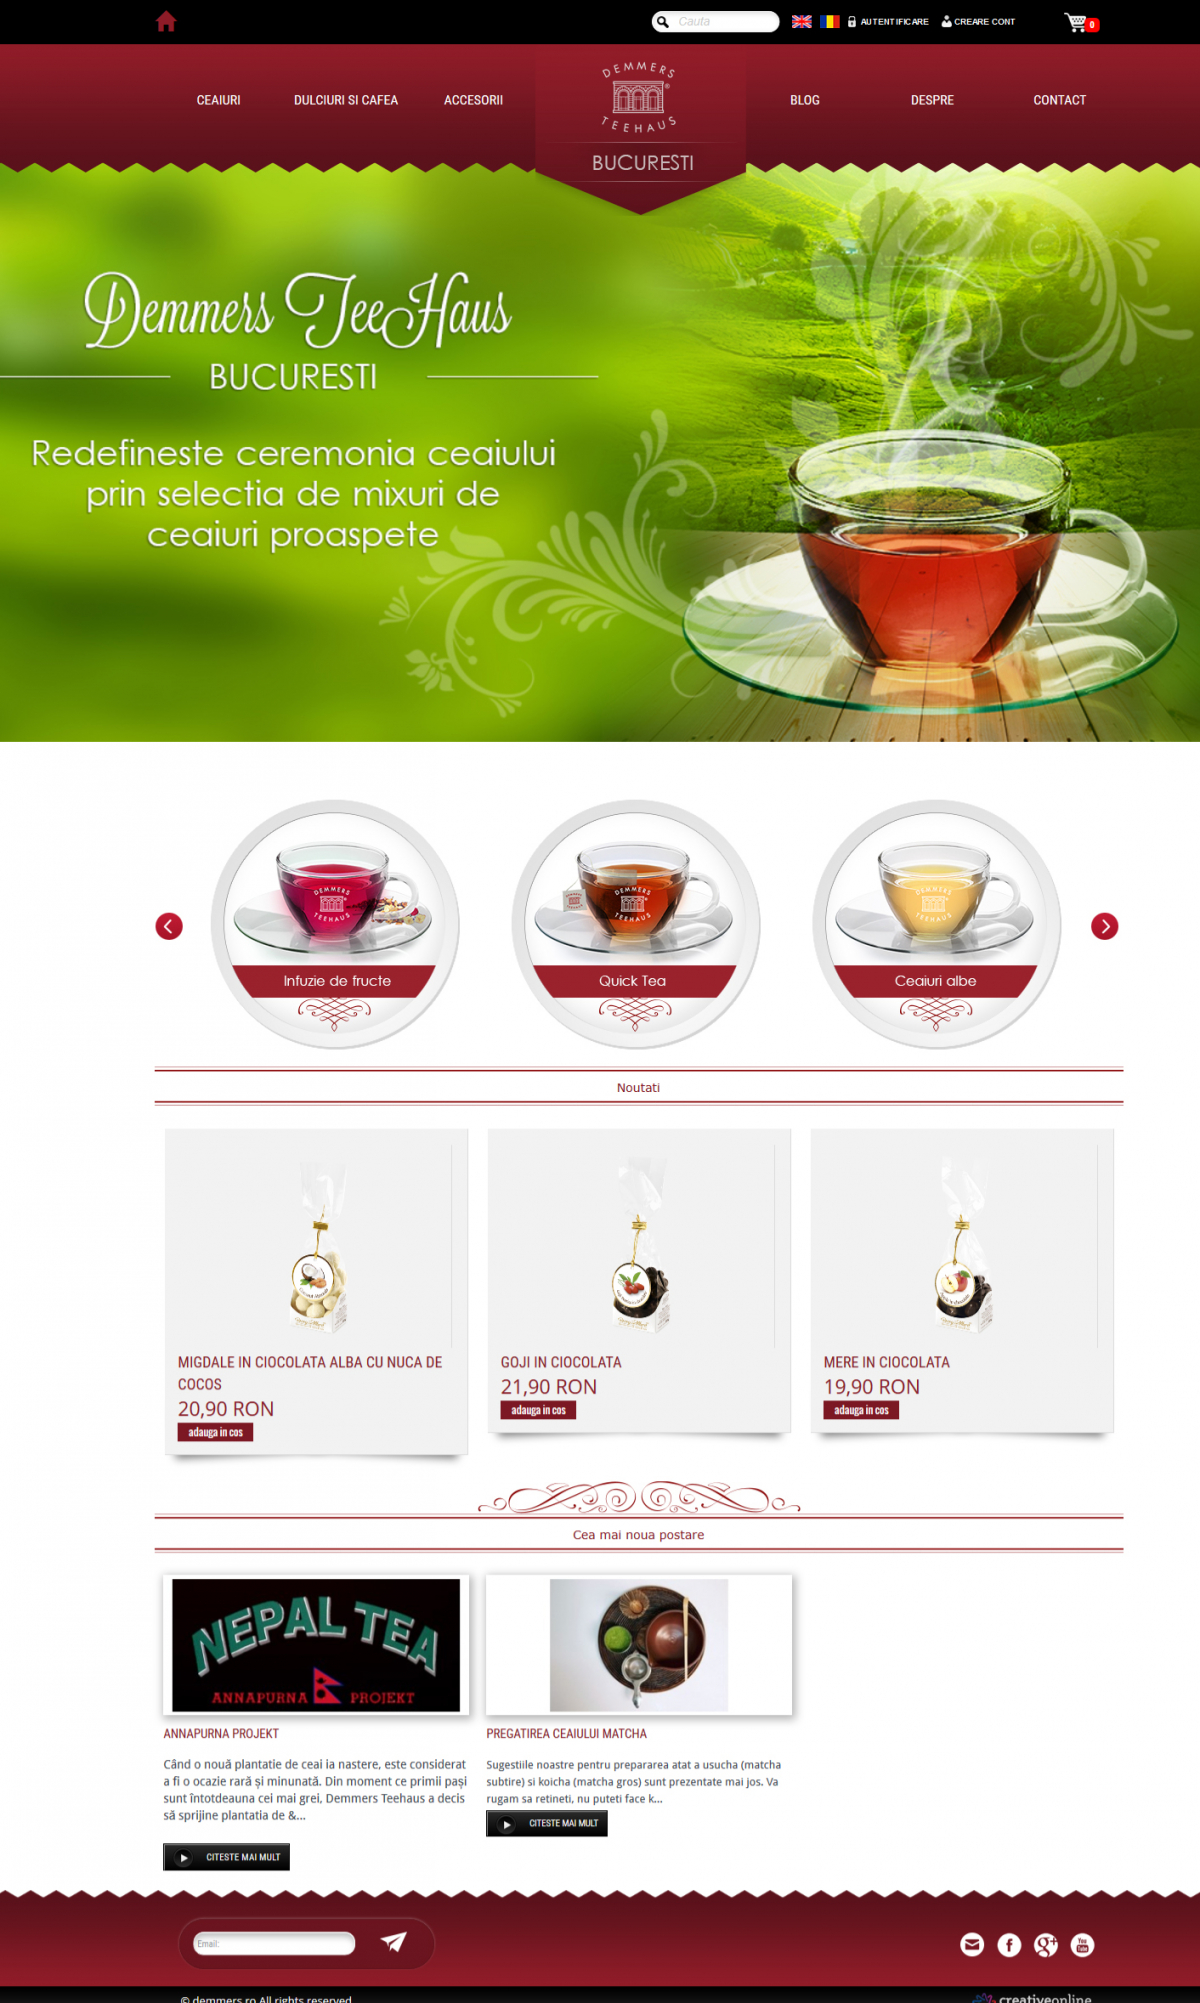 Online shop for tea selling - Demmers Teehaus